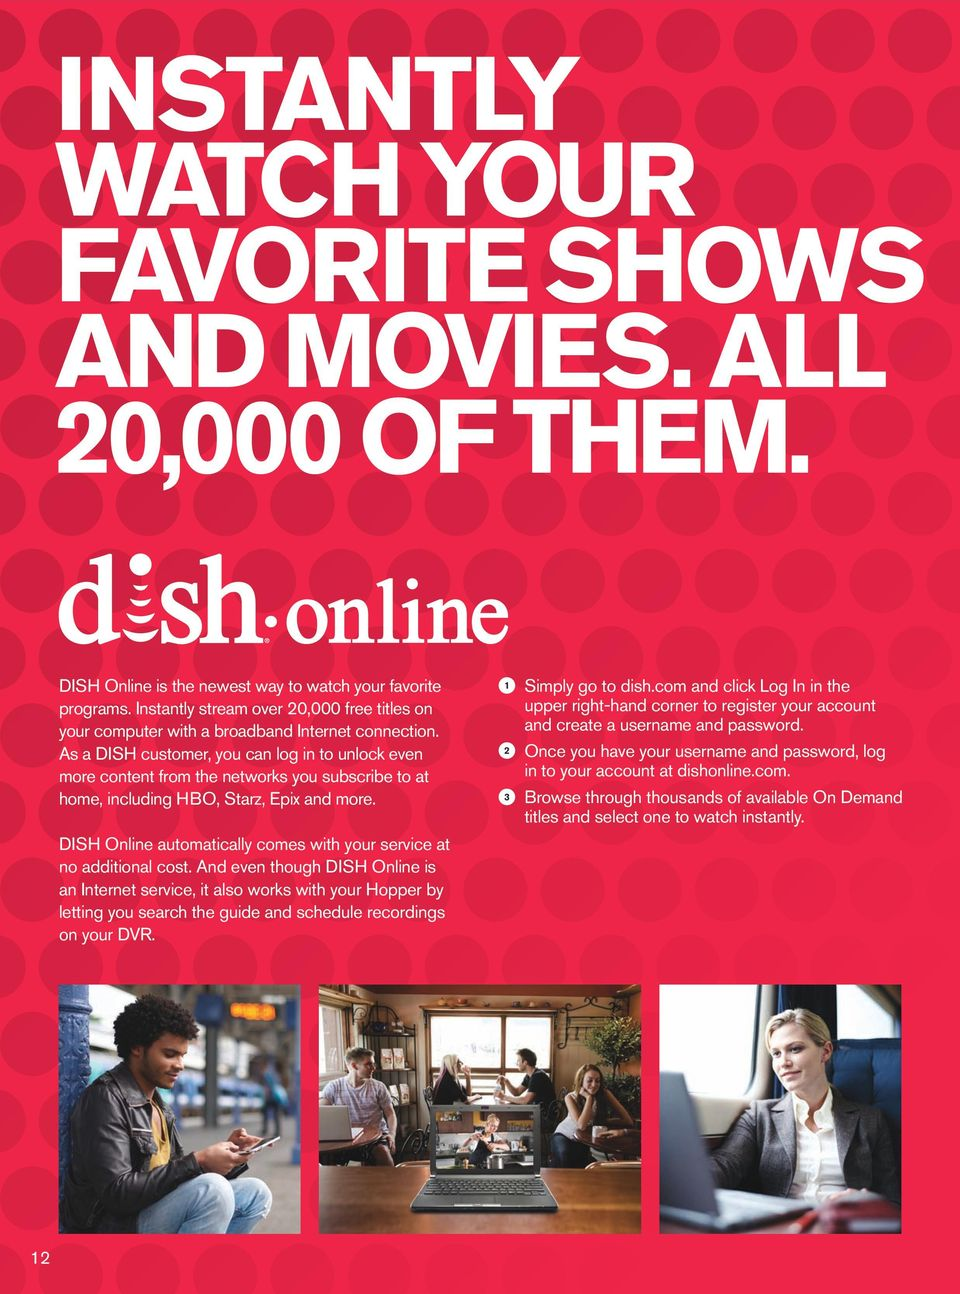 As a DISH customer, you can log in to unlock even more content from the networks you subscribe to at home, including HBO, Starz, Epix and more.